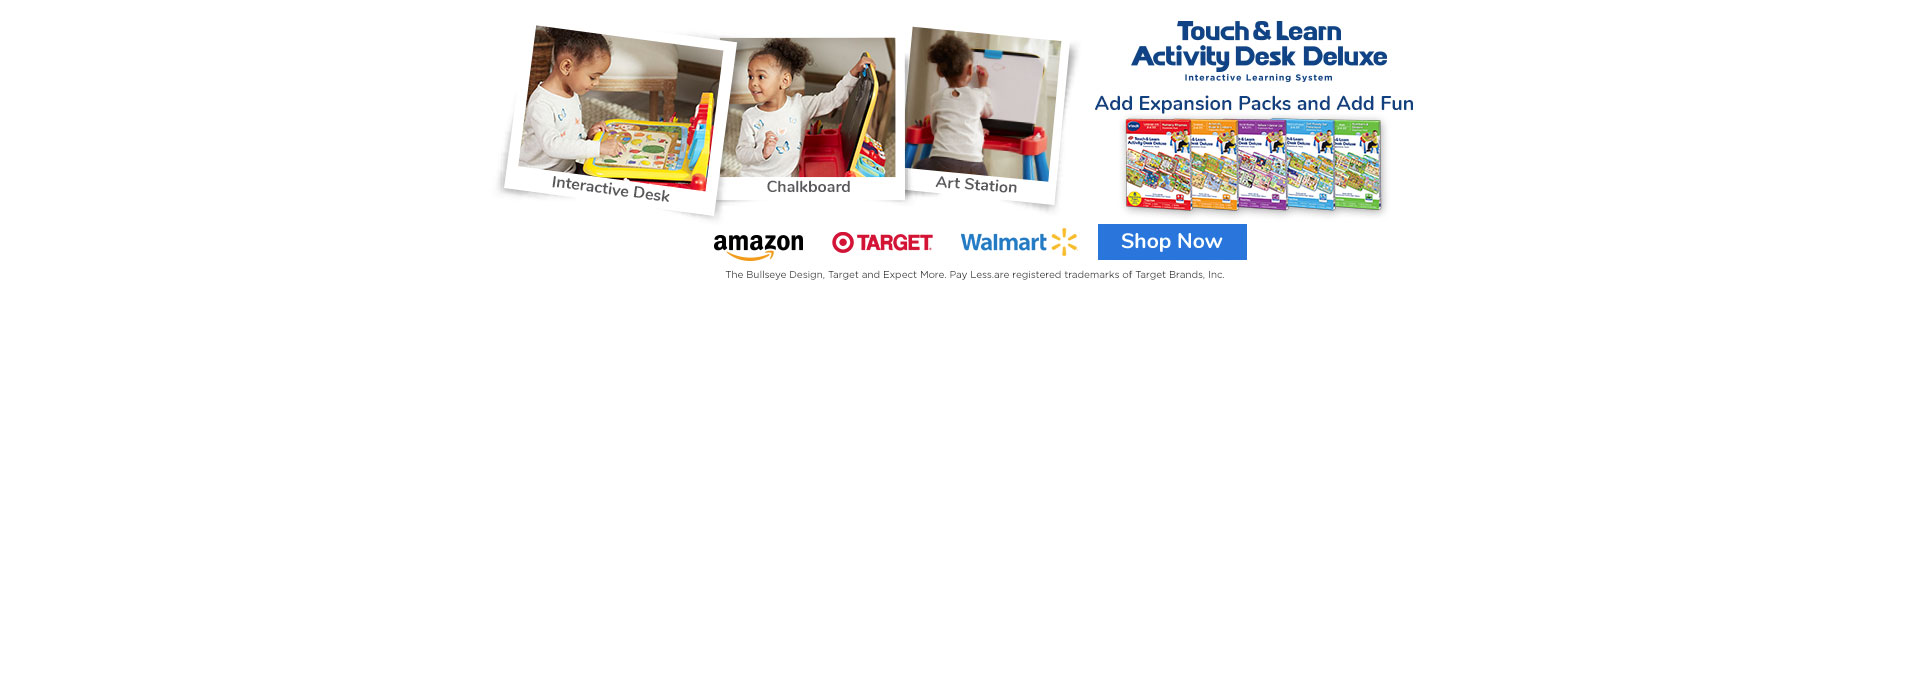 Touch and Learn Activity Desk Deluxe | Shop Now